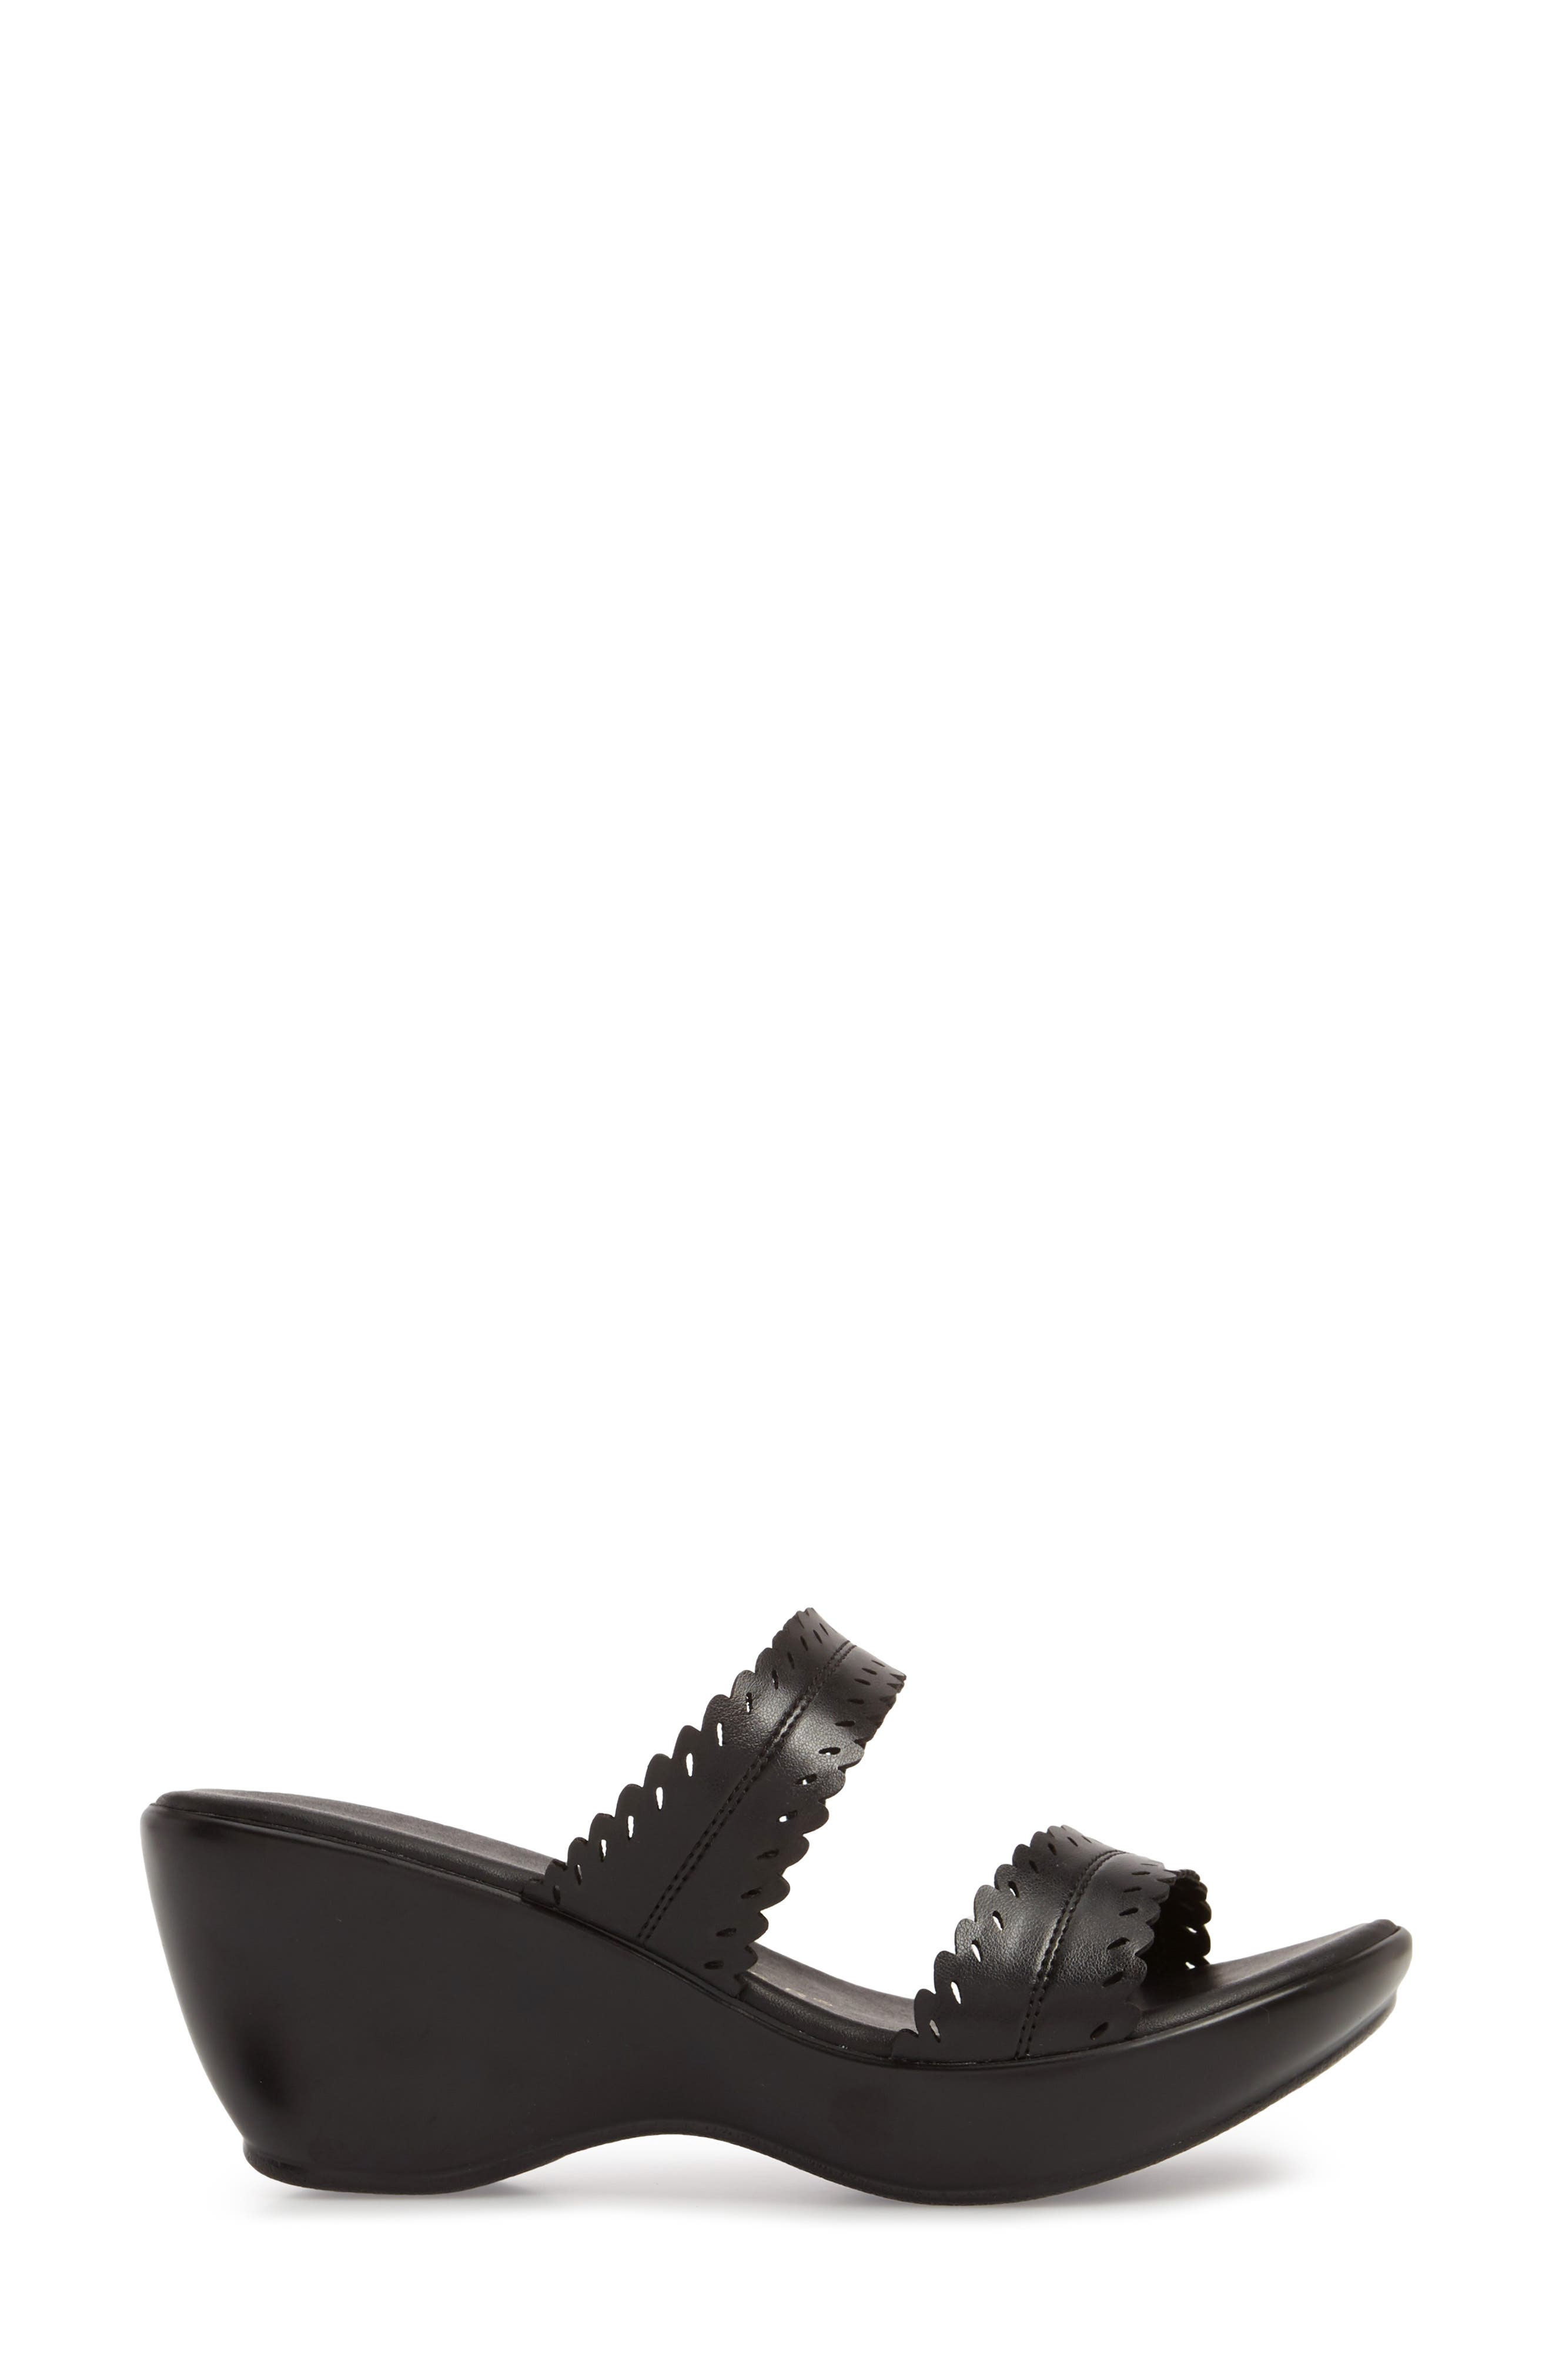 Pouty Wedge Sandal,                             Alternate thumbnail 3, color,                             BLACK FABRIC